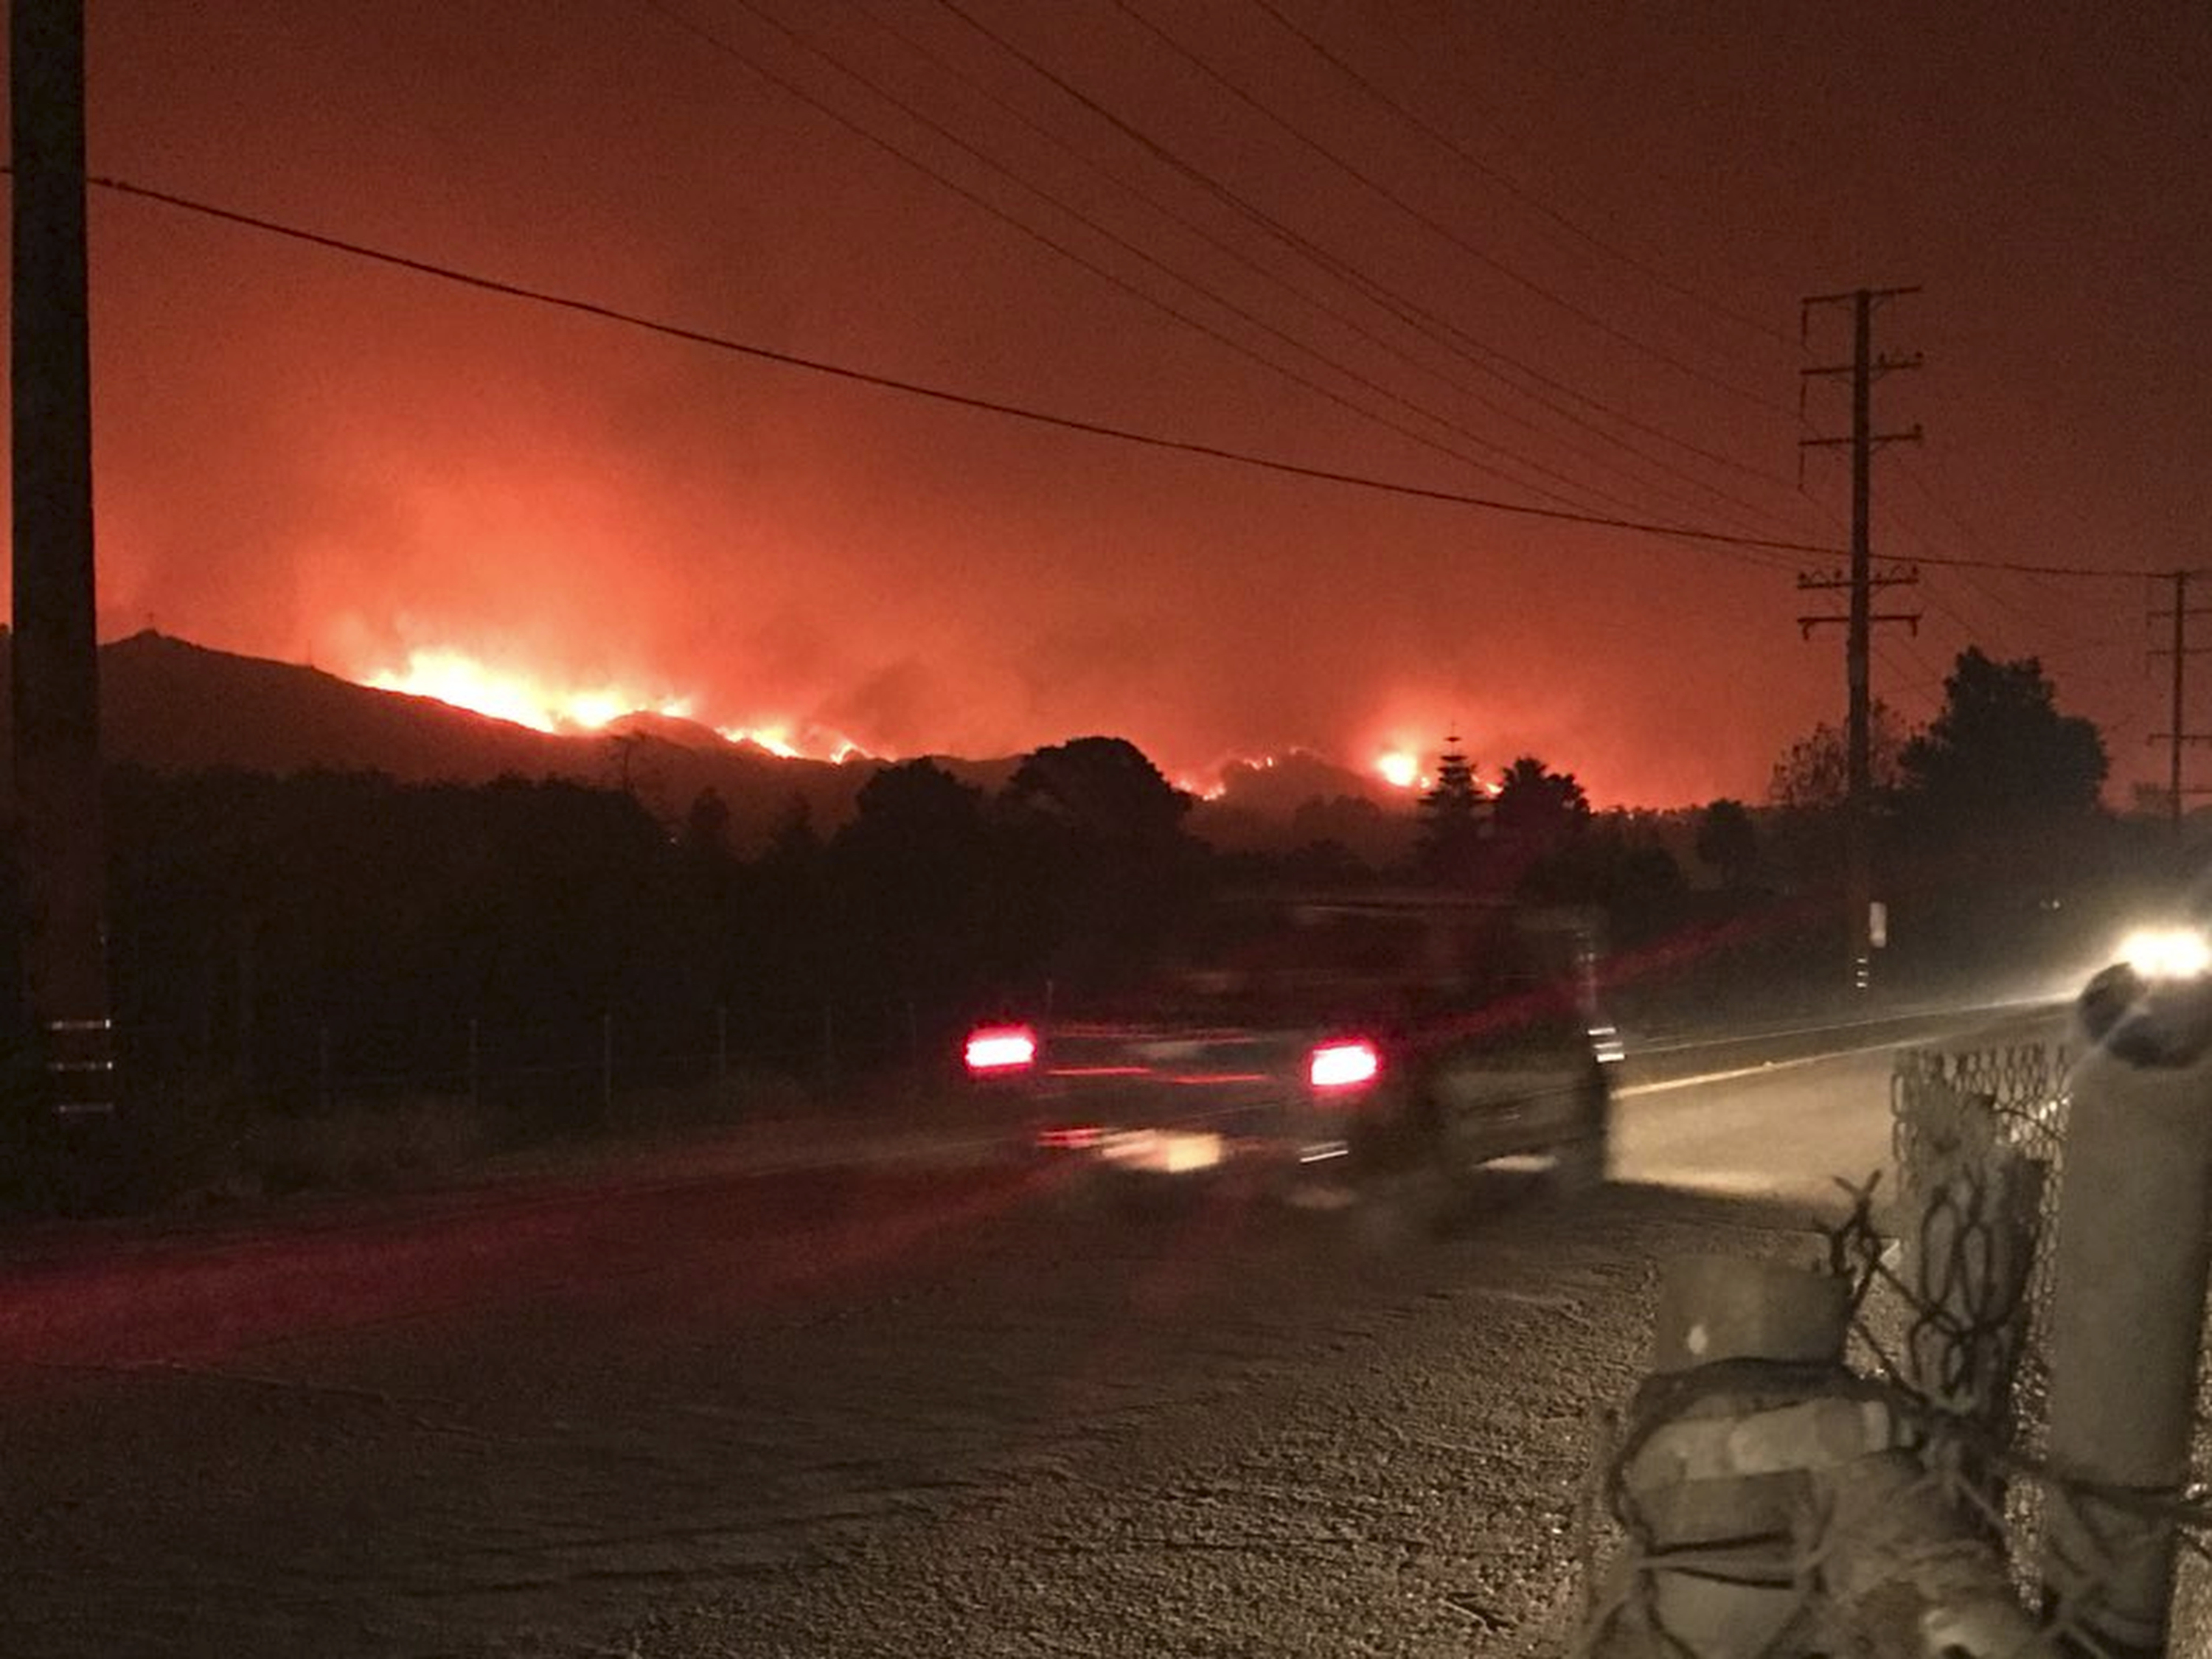 In this early morning Sunday, Dec. 10, 2017 photo released by Santa Barbara County Fire Department, flames are seen behind Carpinteria, Calif. A flare-up on the western edge of Southern California's largest and most destructive wildfire sent residents fleeing Sunday, as wind-fanned flames churned through canyons and down hillsides toward coastal towns. Crews with help from water-dropping aircraft saved several homes as unpredictable gusts sent the blaze churning deeper into foothill areas northwest of Los Angeles that haven't burned in decades. New evacuations were ordered in Carpinteria, a seaside city in Santa Barbara County that has been under fire threat for days. (Mike Eliason/Santa Barbara County Fire Department via AP)